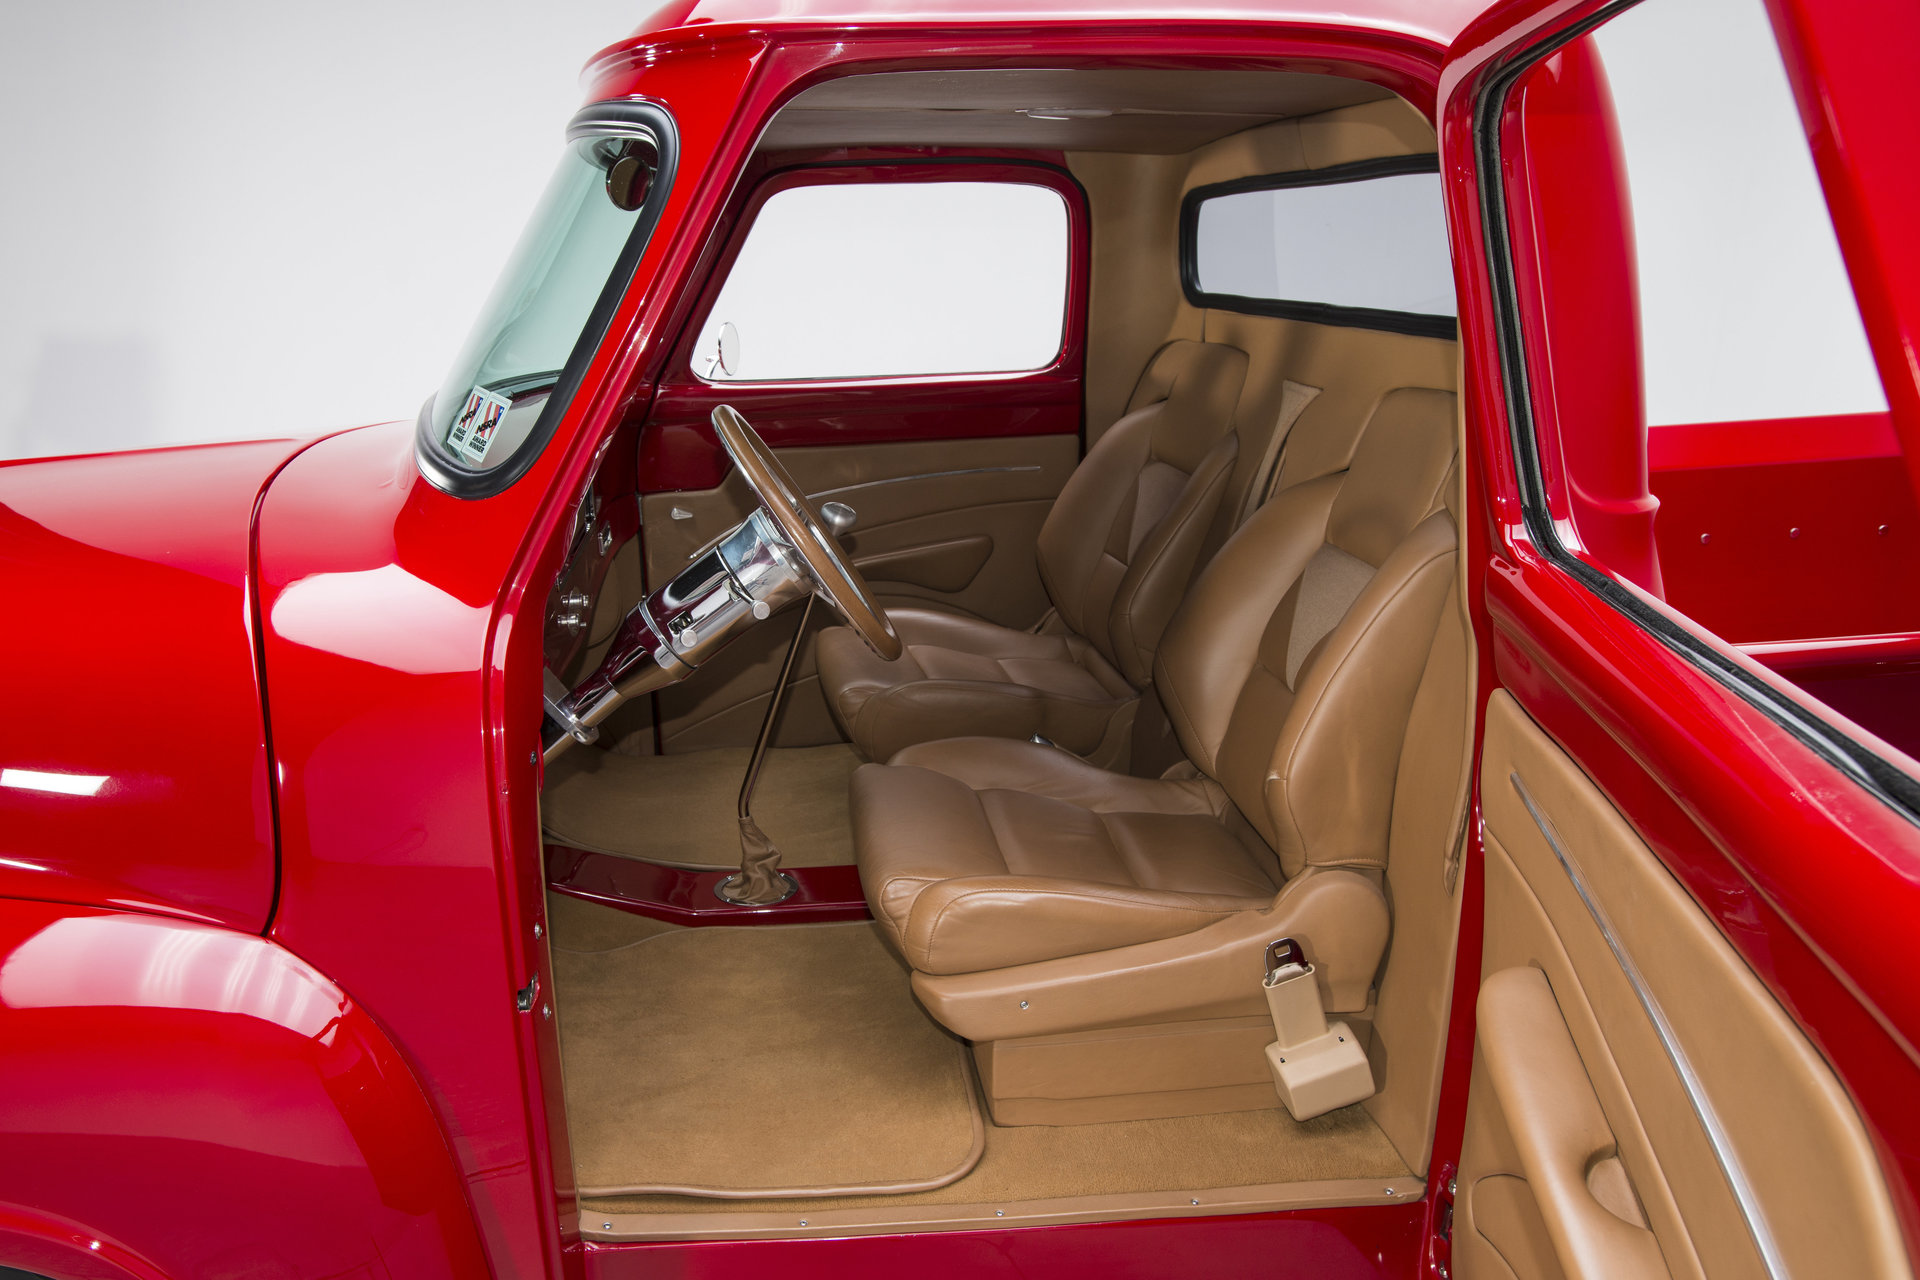 1953 Ford F100 Pickup Truck For Sale 60376 Mcg Crew Cab